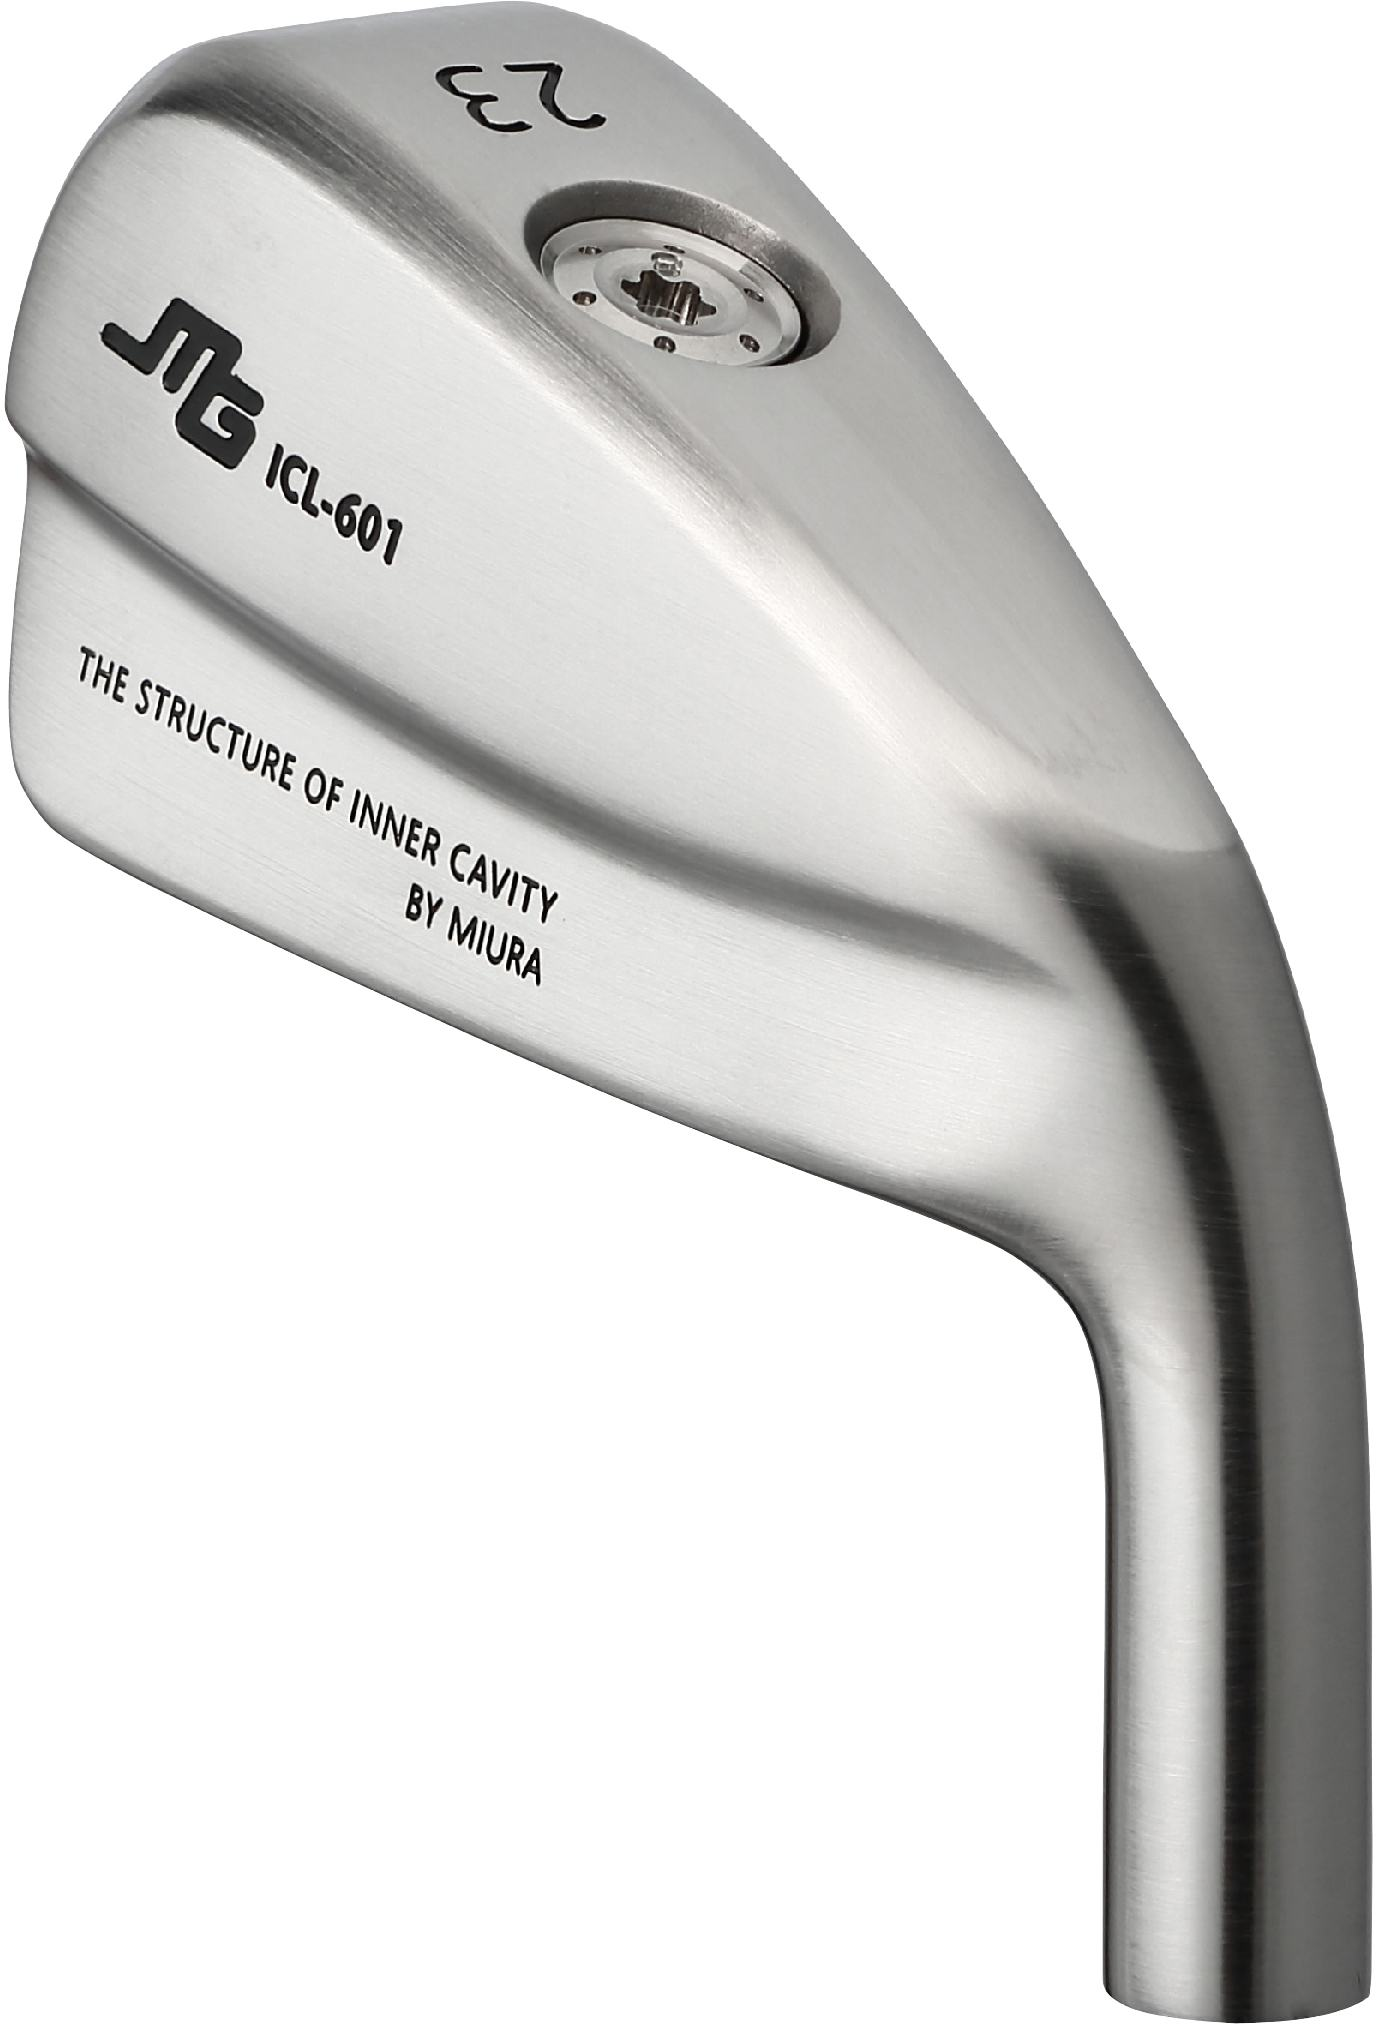 Miura Icl 601 Driving Iron Review